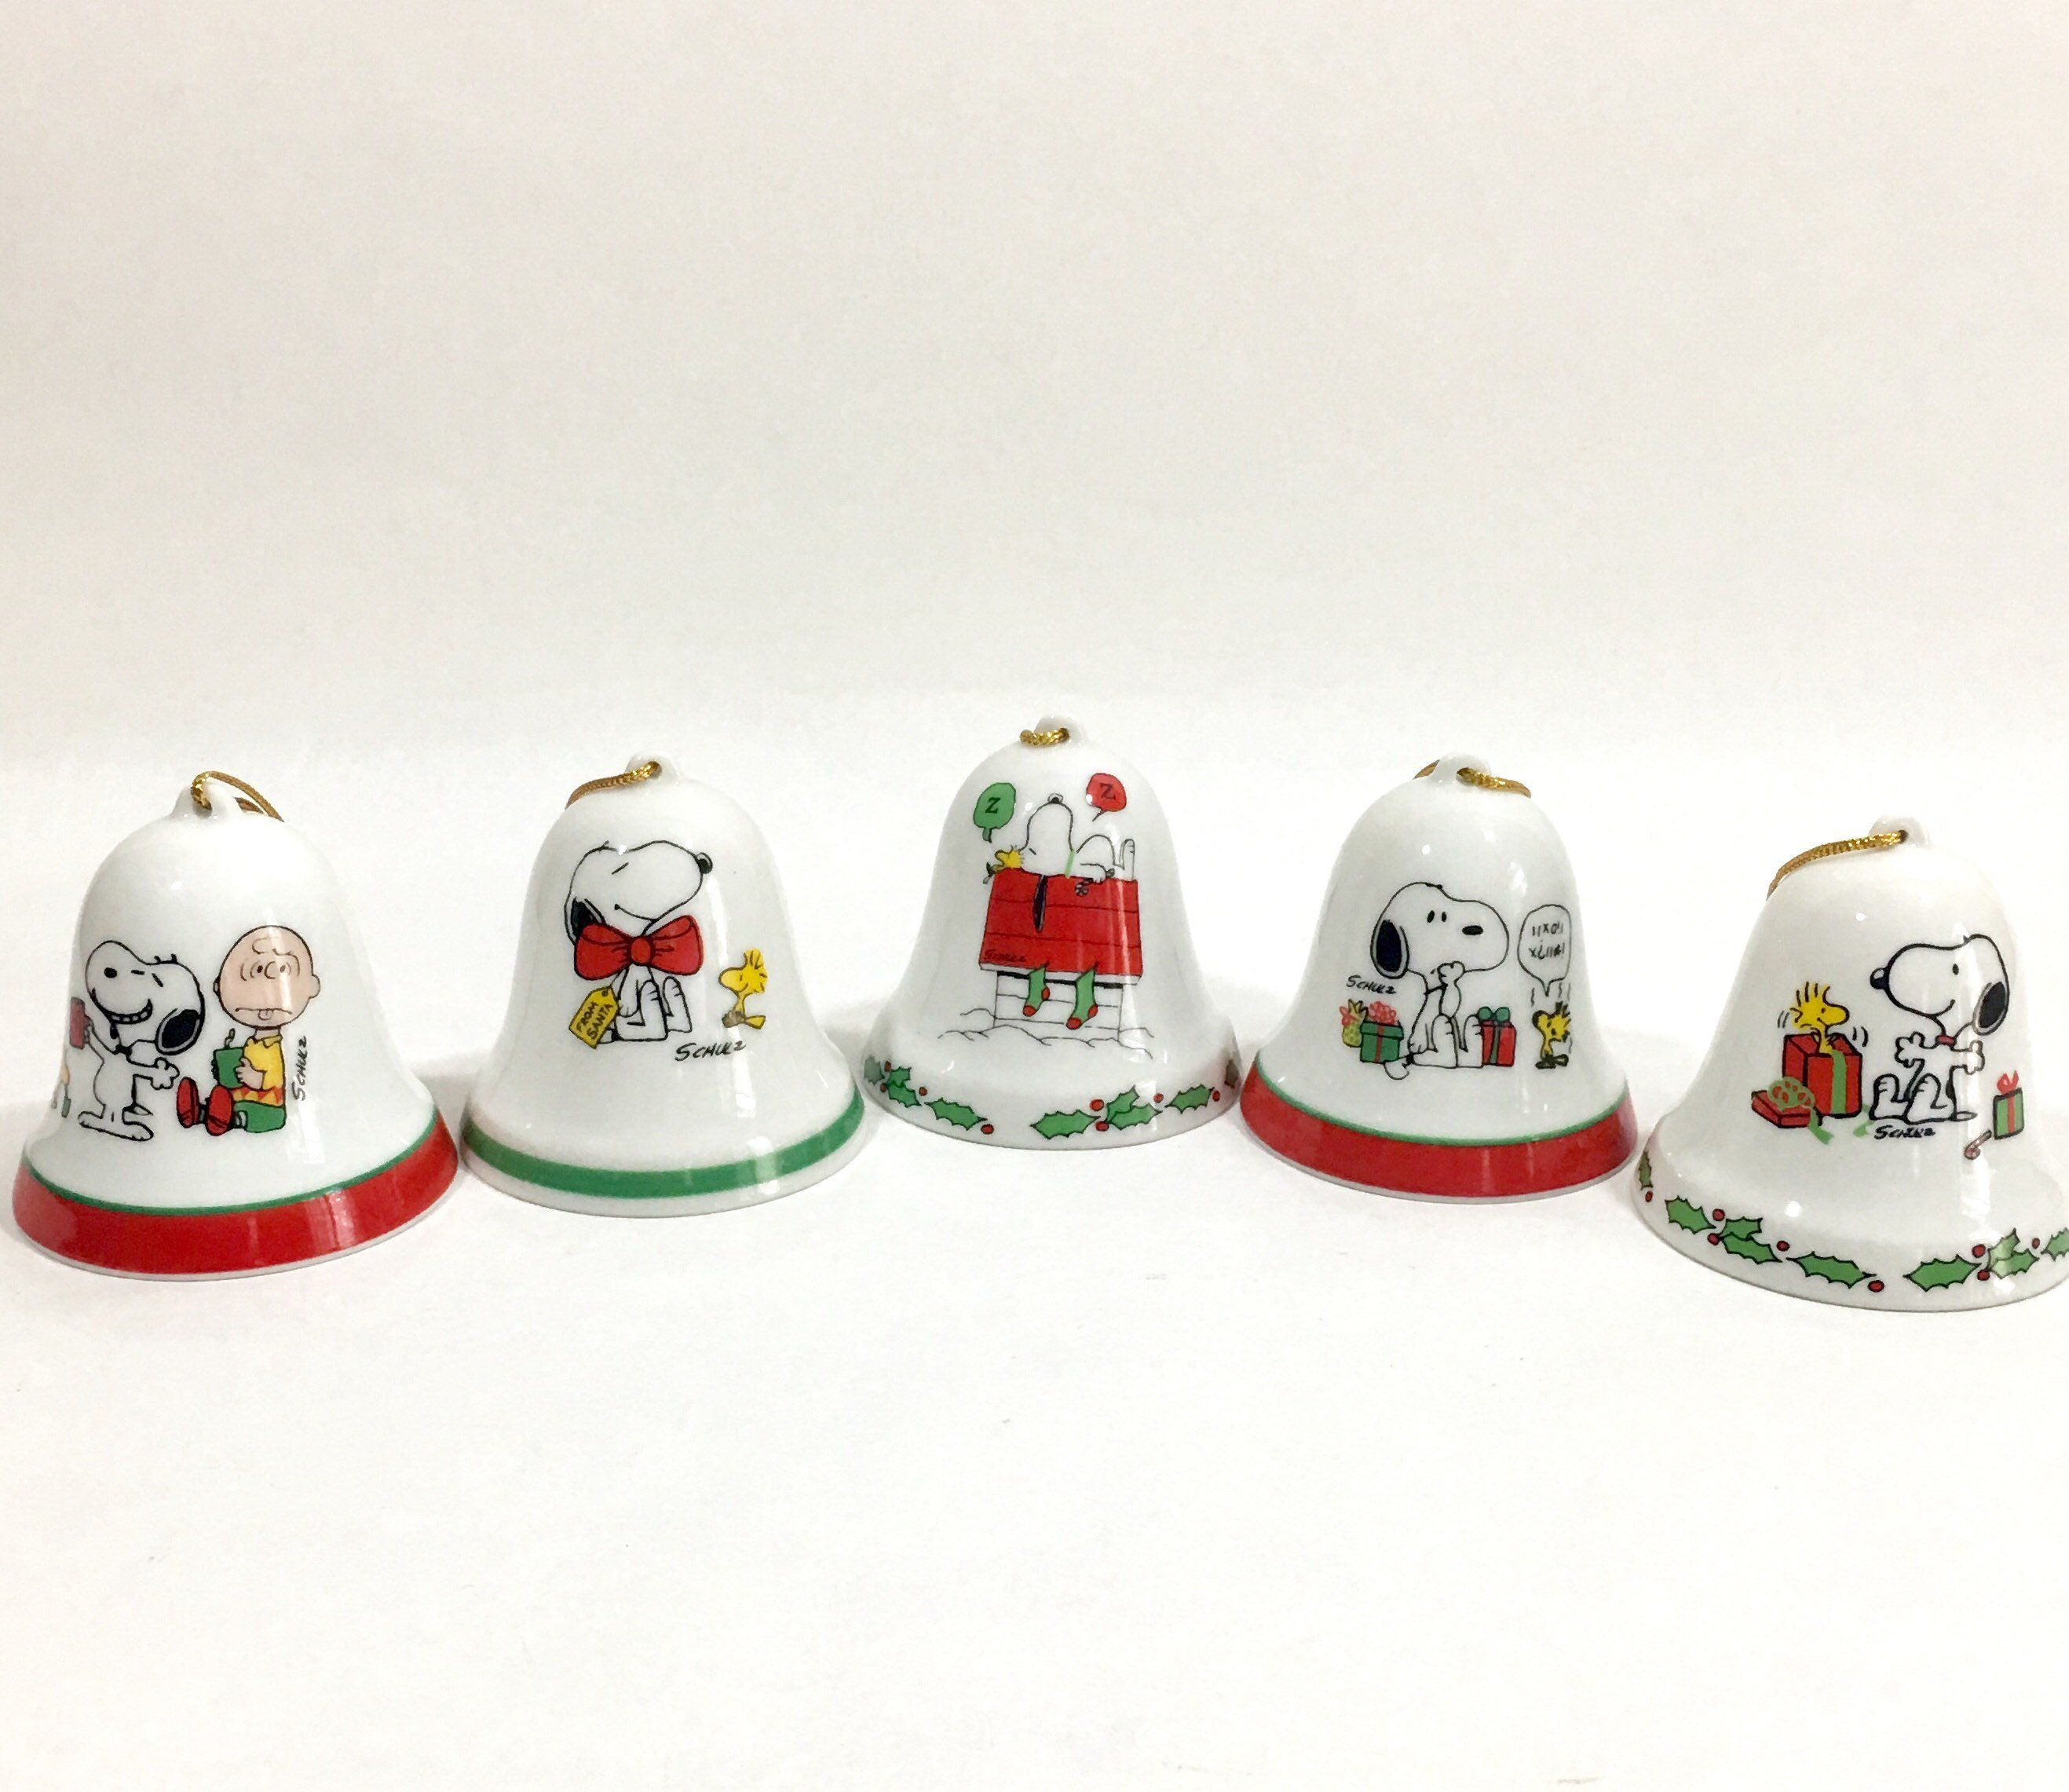 Vintage Snoopy Woodstock Christmas Bell Ornament Peanuts Porcelain Holiday Ornament Mix And Match By Eastwestvintage1 On Etsy